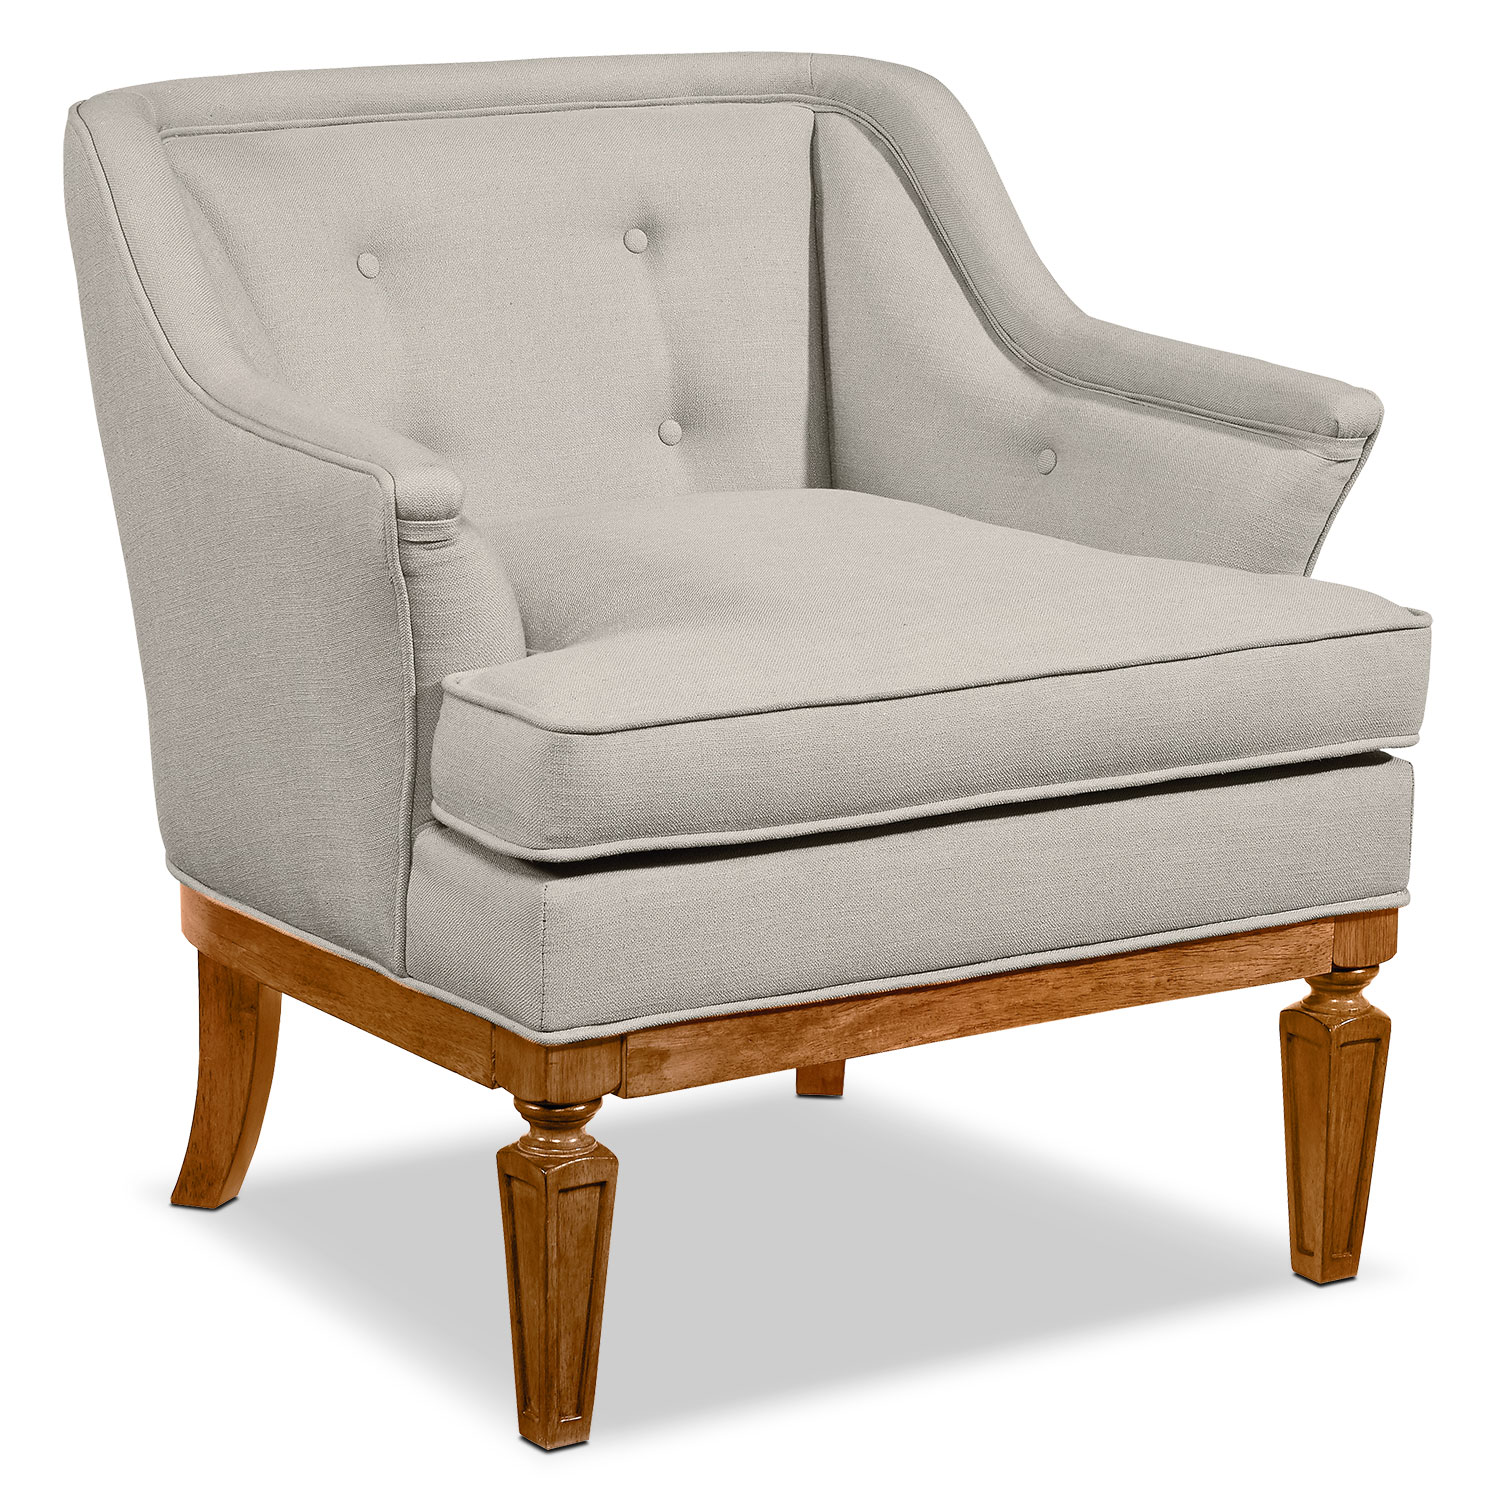 Living Room Furniture - Cotillion Accent Chair - Flannel Gray